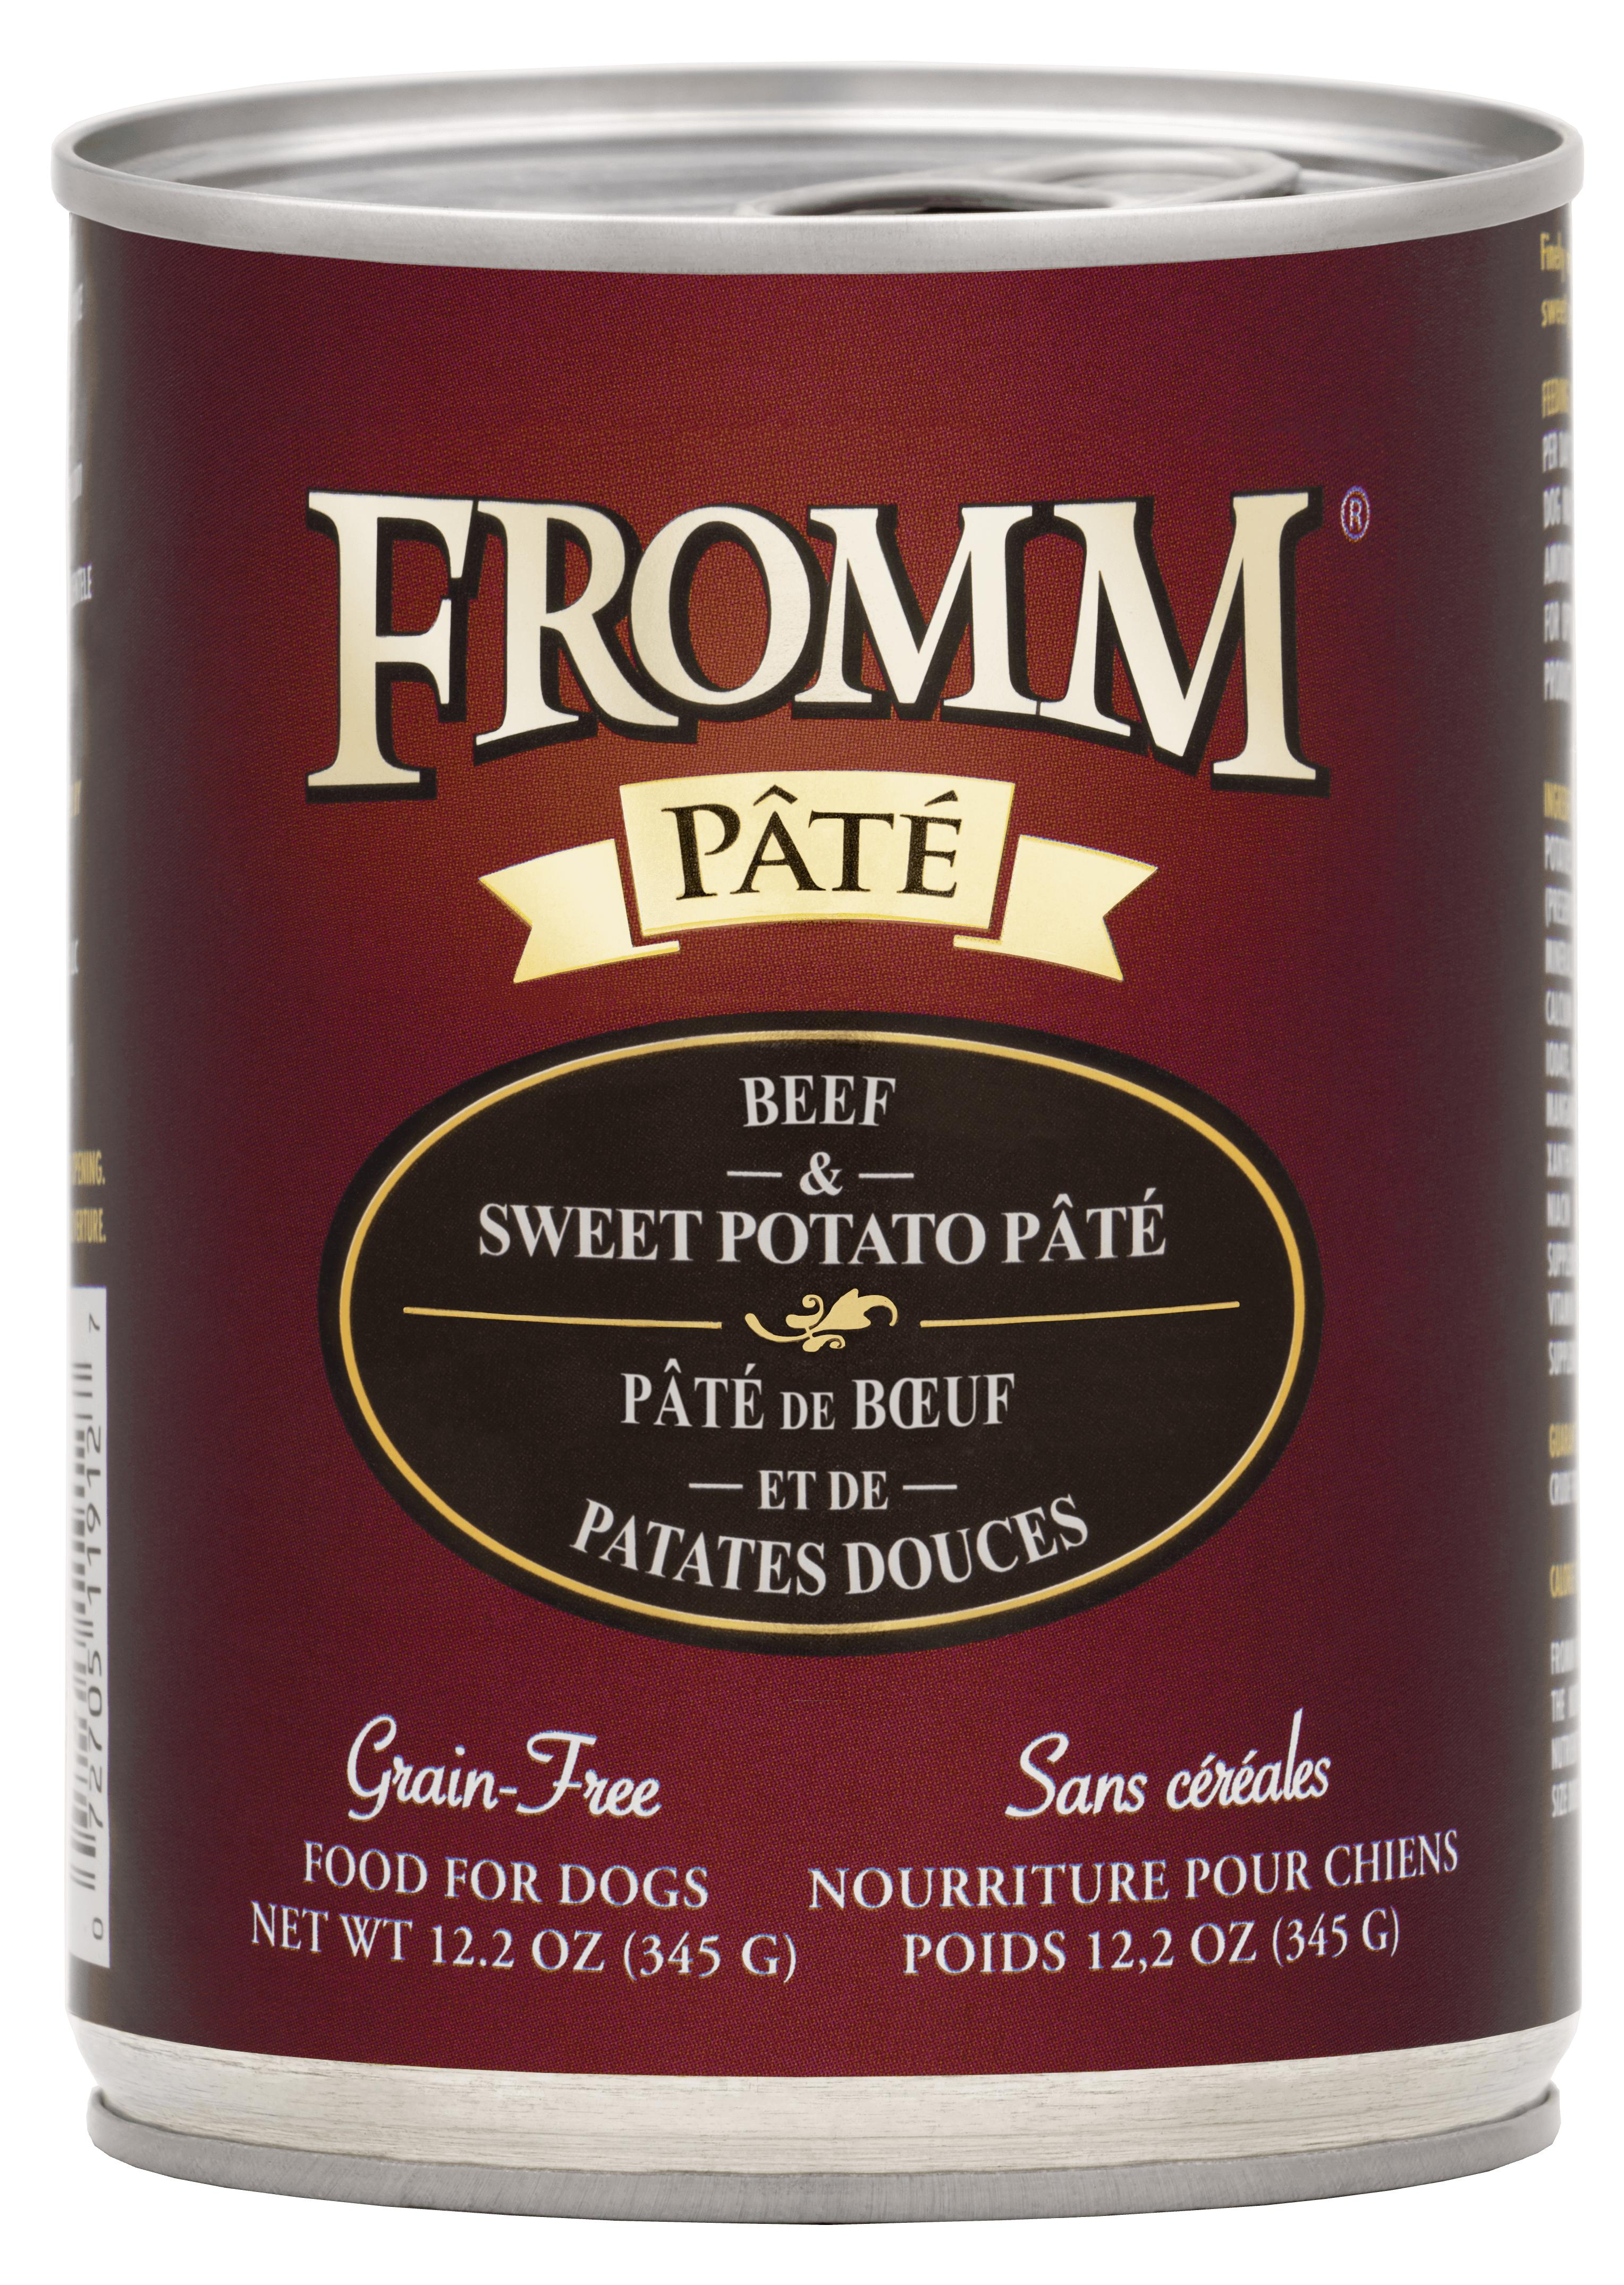 Fromm Beef & Sweet Potato Pate Canned Dog Food, 12.2-oz